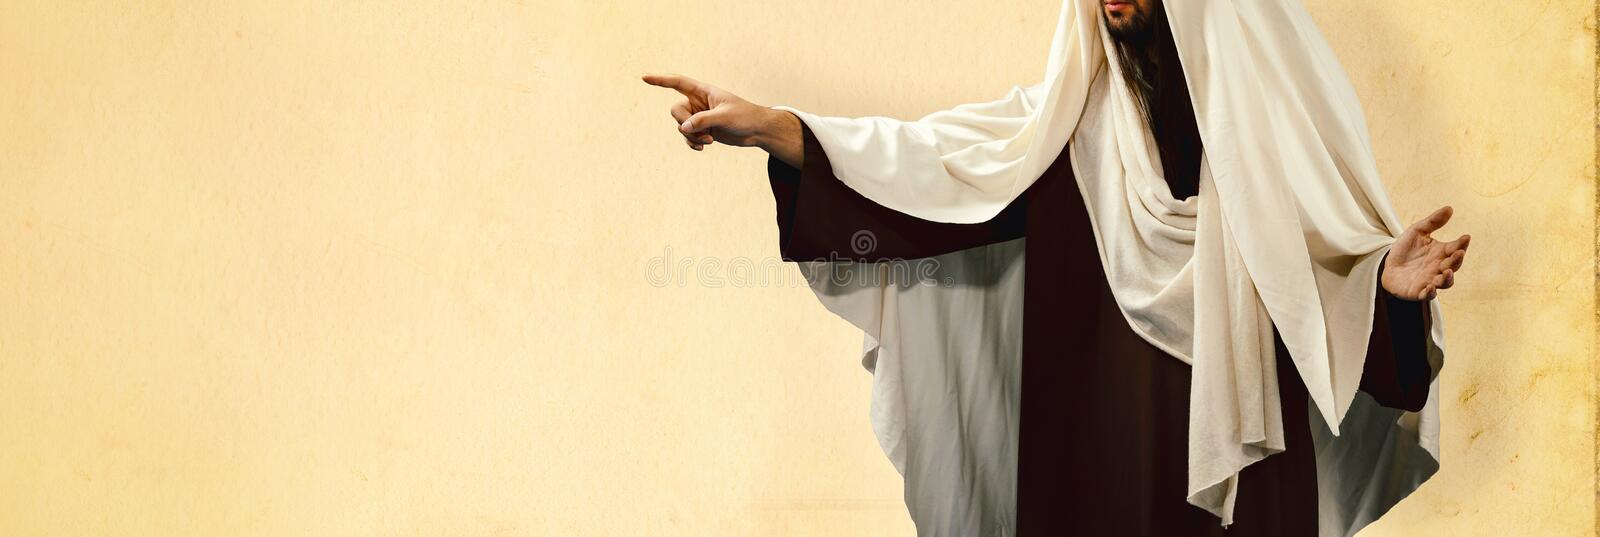 Jesus Christ pointing finger to the side. Man wearing Jesus Christ costume pointing with hand and finger to the side royalty free stock image